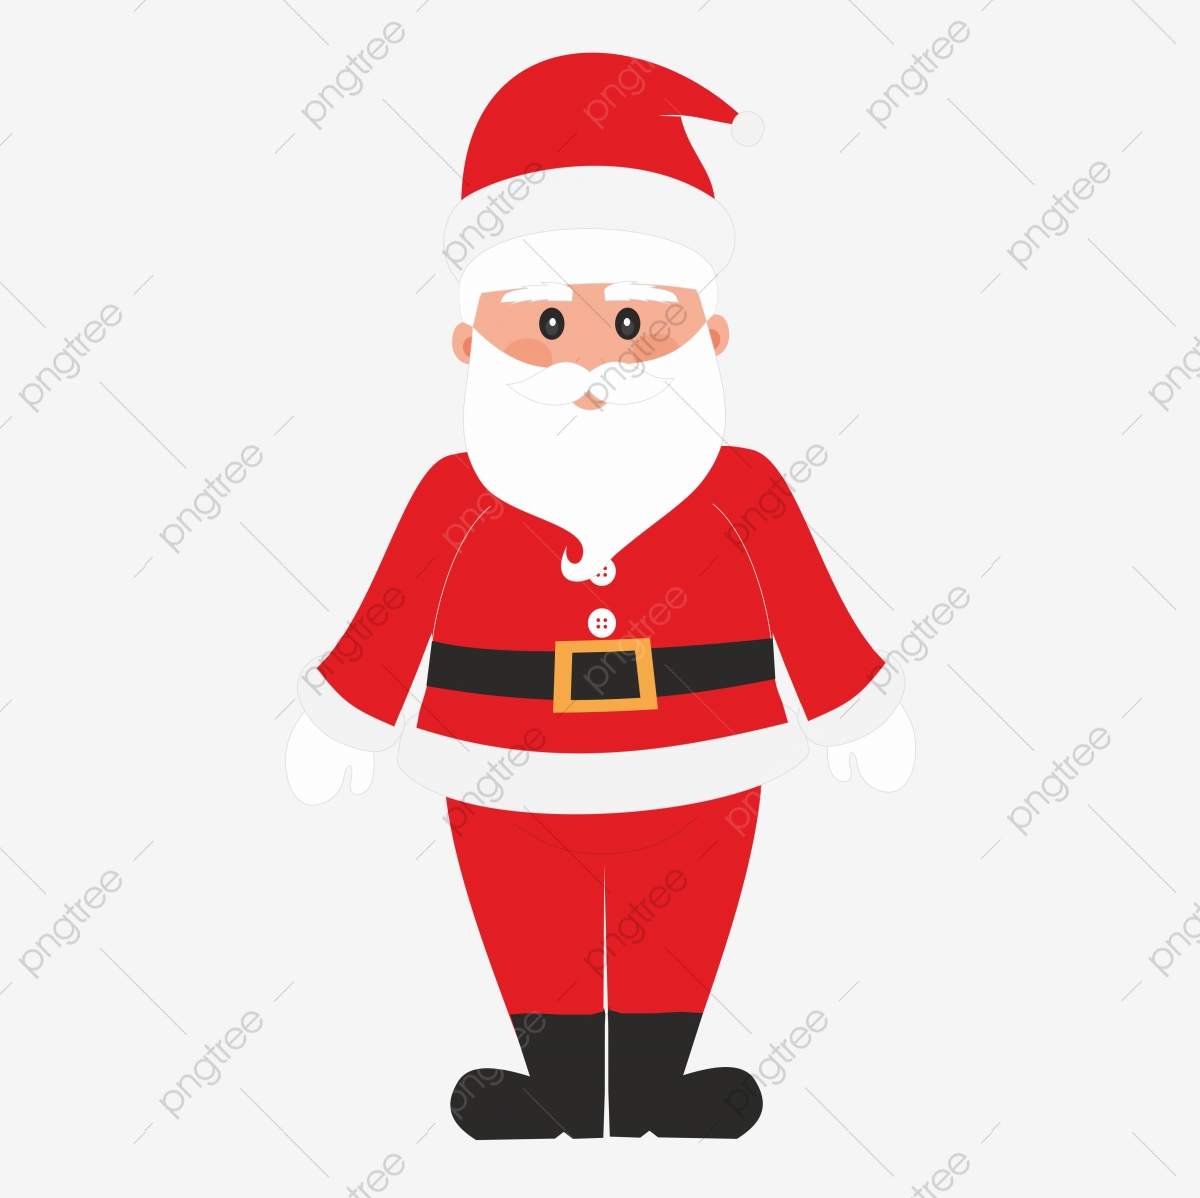 Papai Noel, Noel, Natal PNG Transparent Image and Clipart.